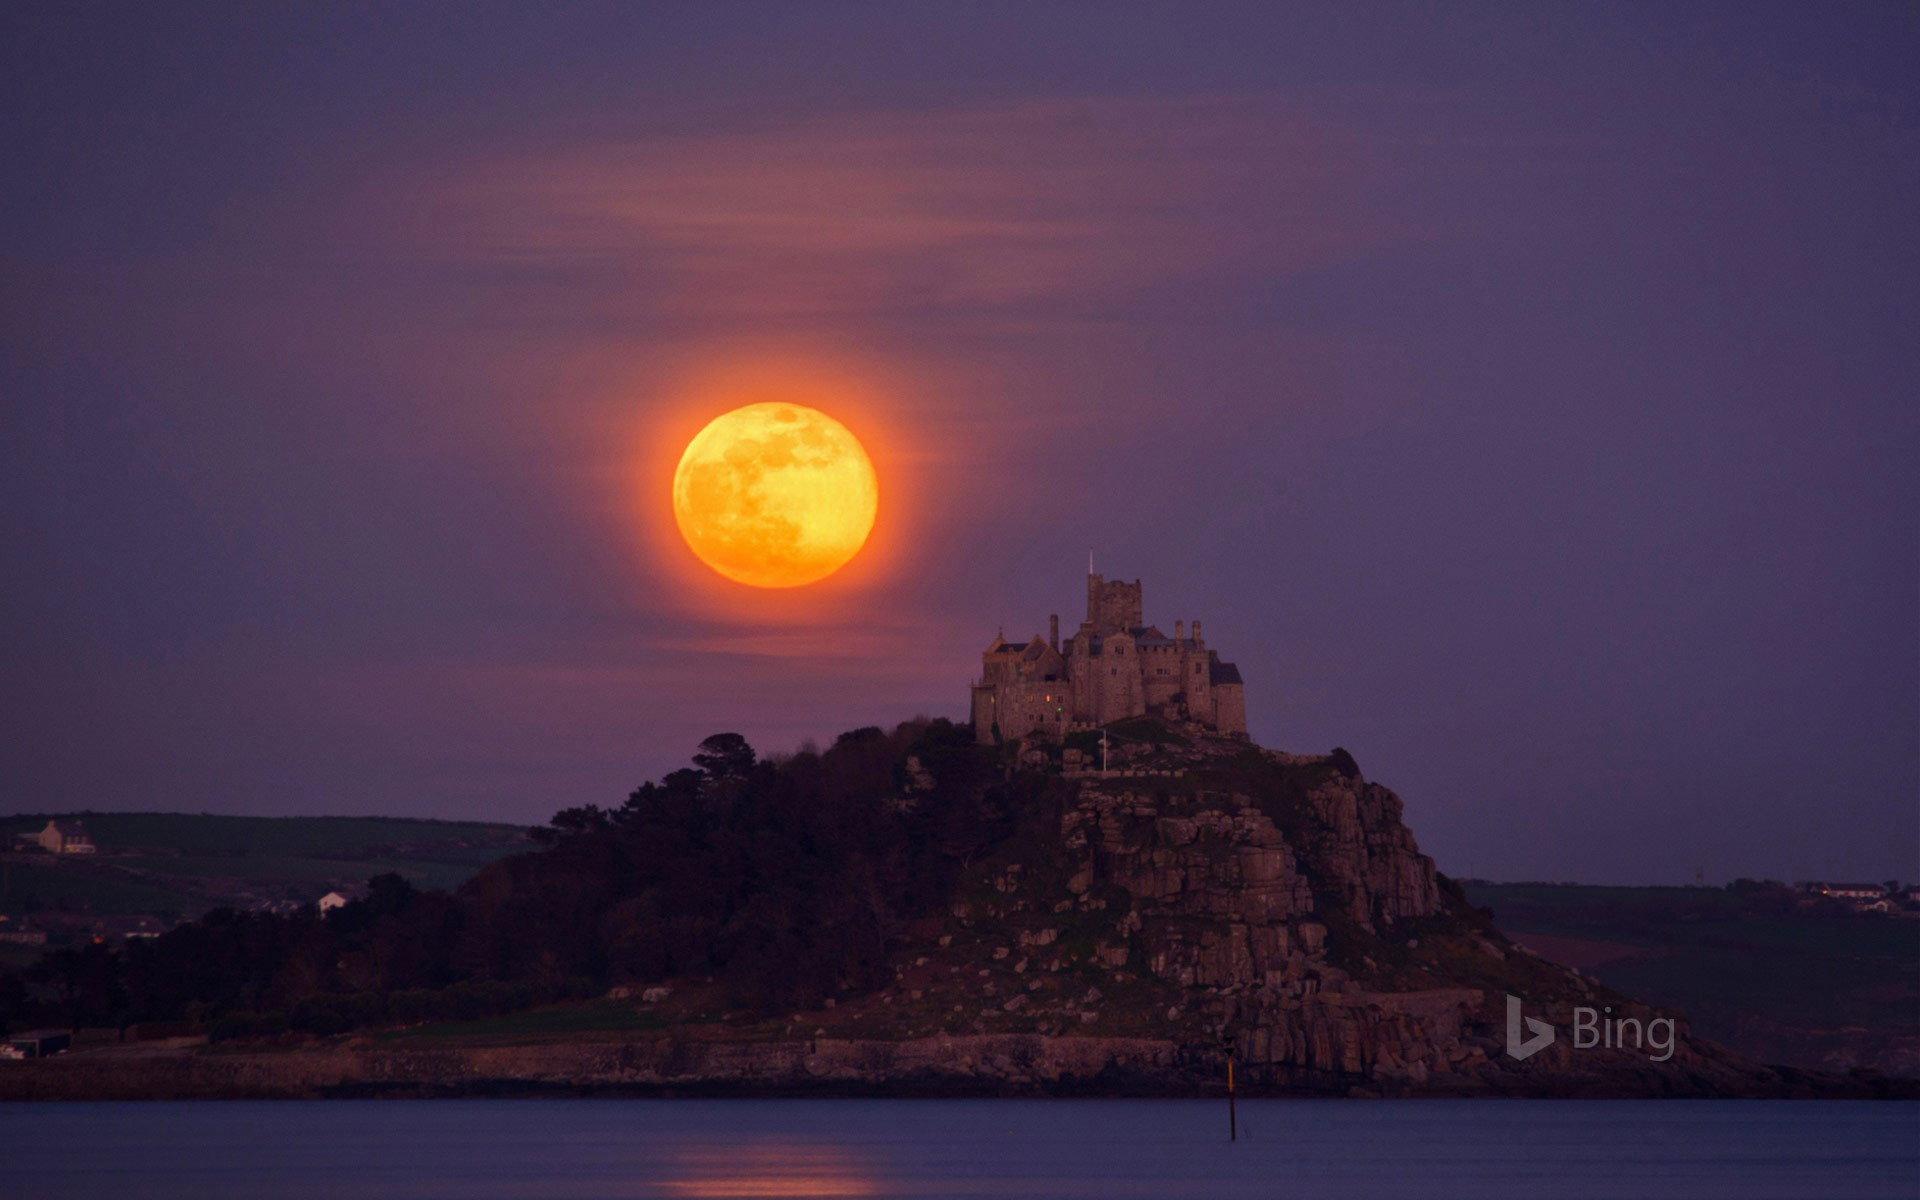 The 2017 April full moon, or pink moon, rises over St. Michael's Mount, Cornwall, England